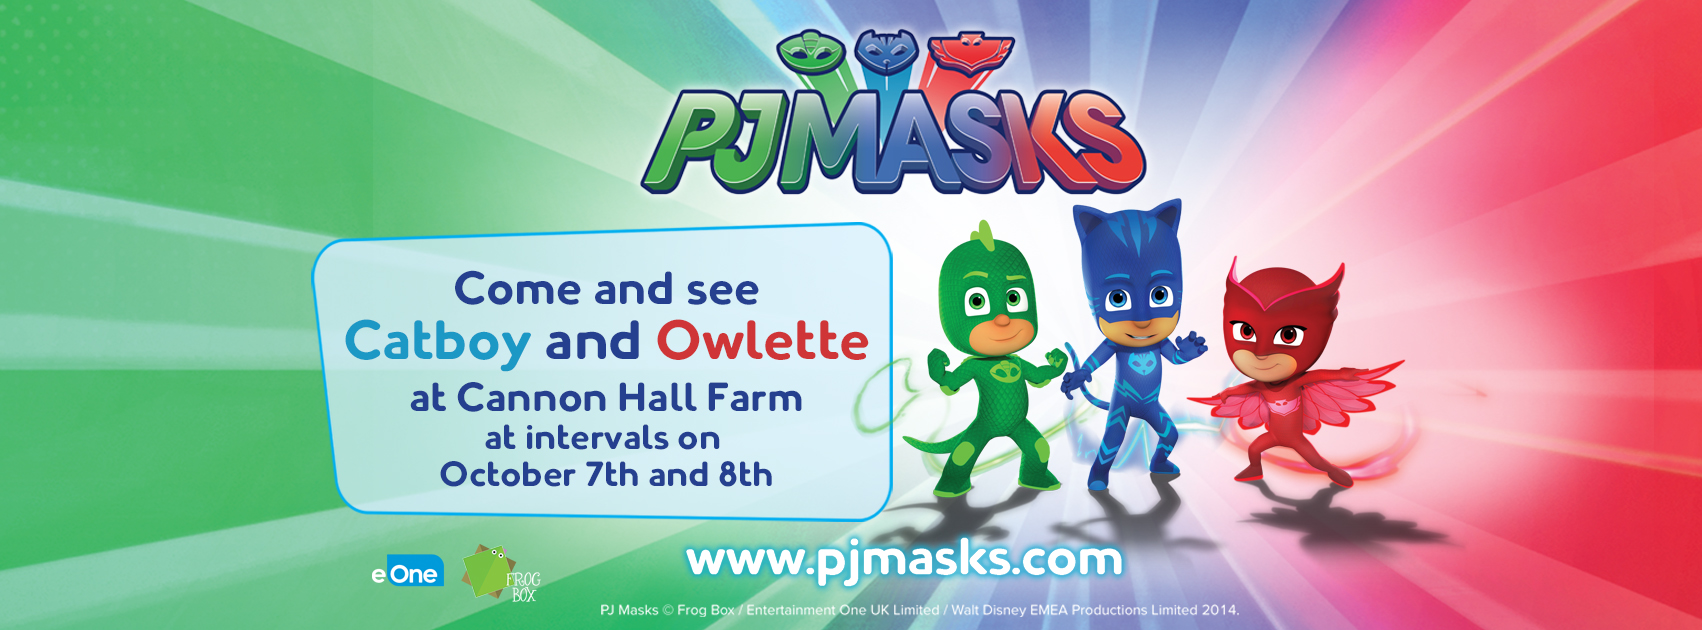 PJ-Masks-Facebook